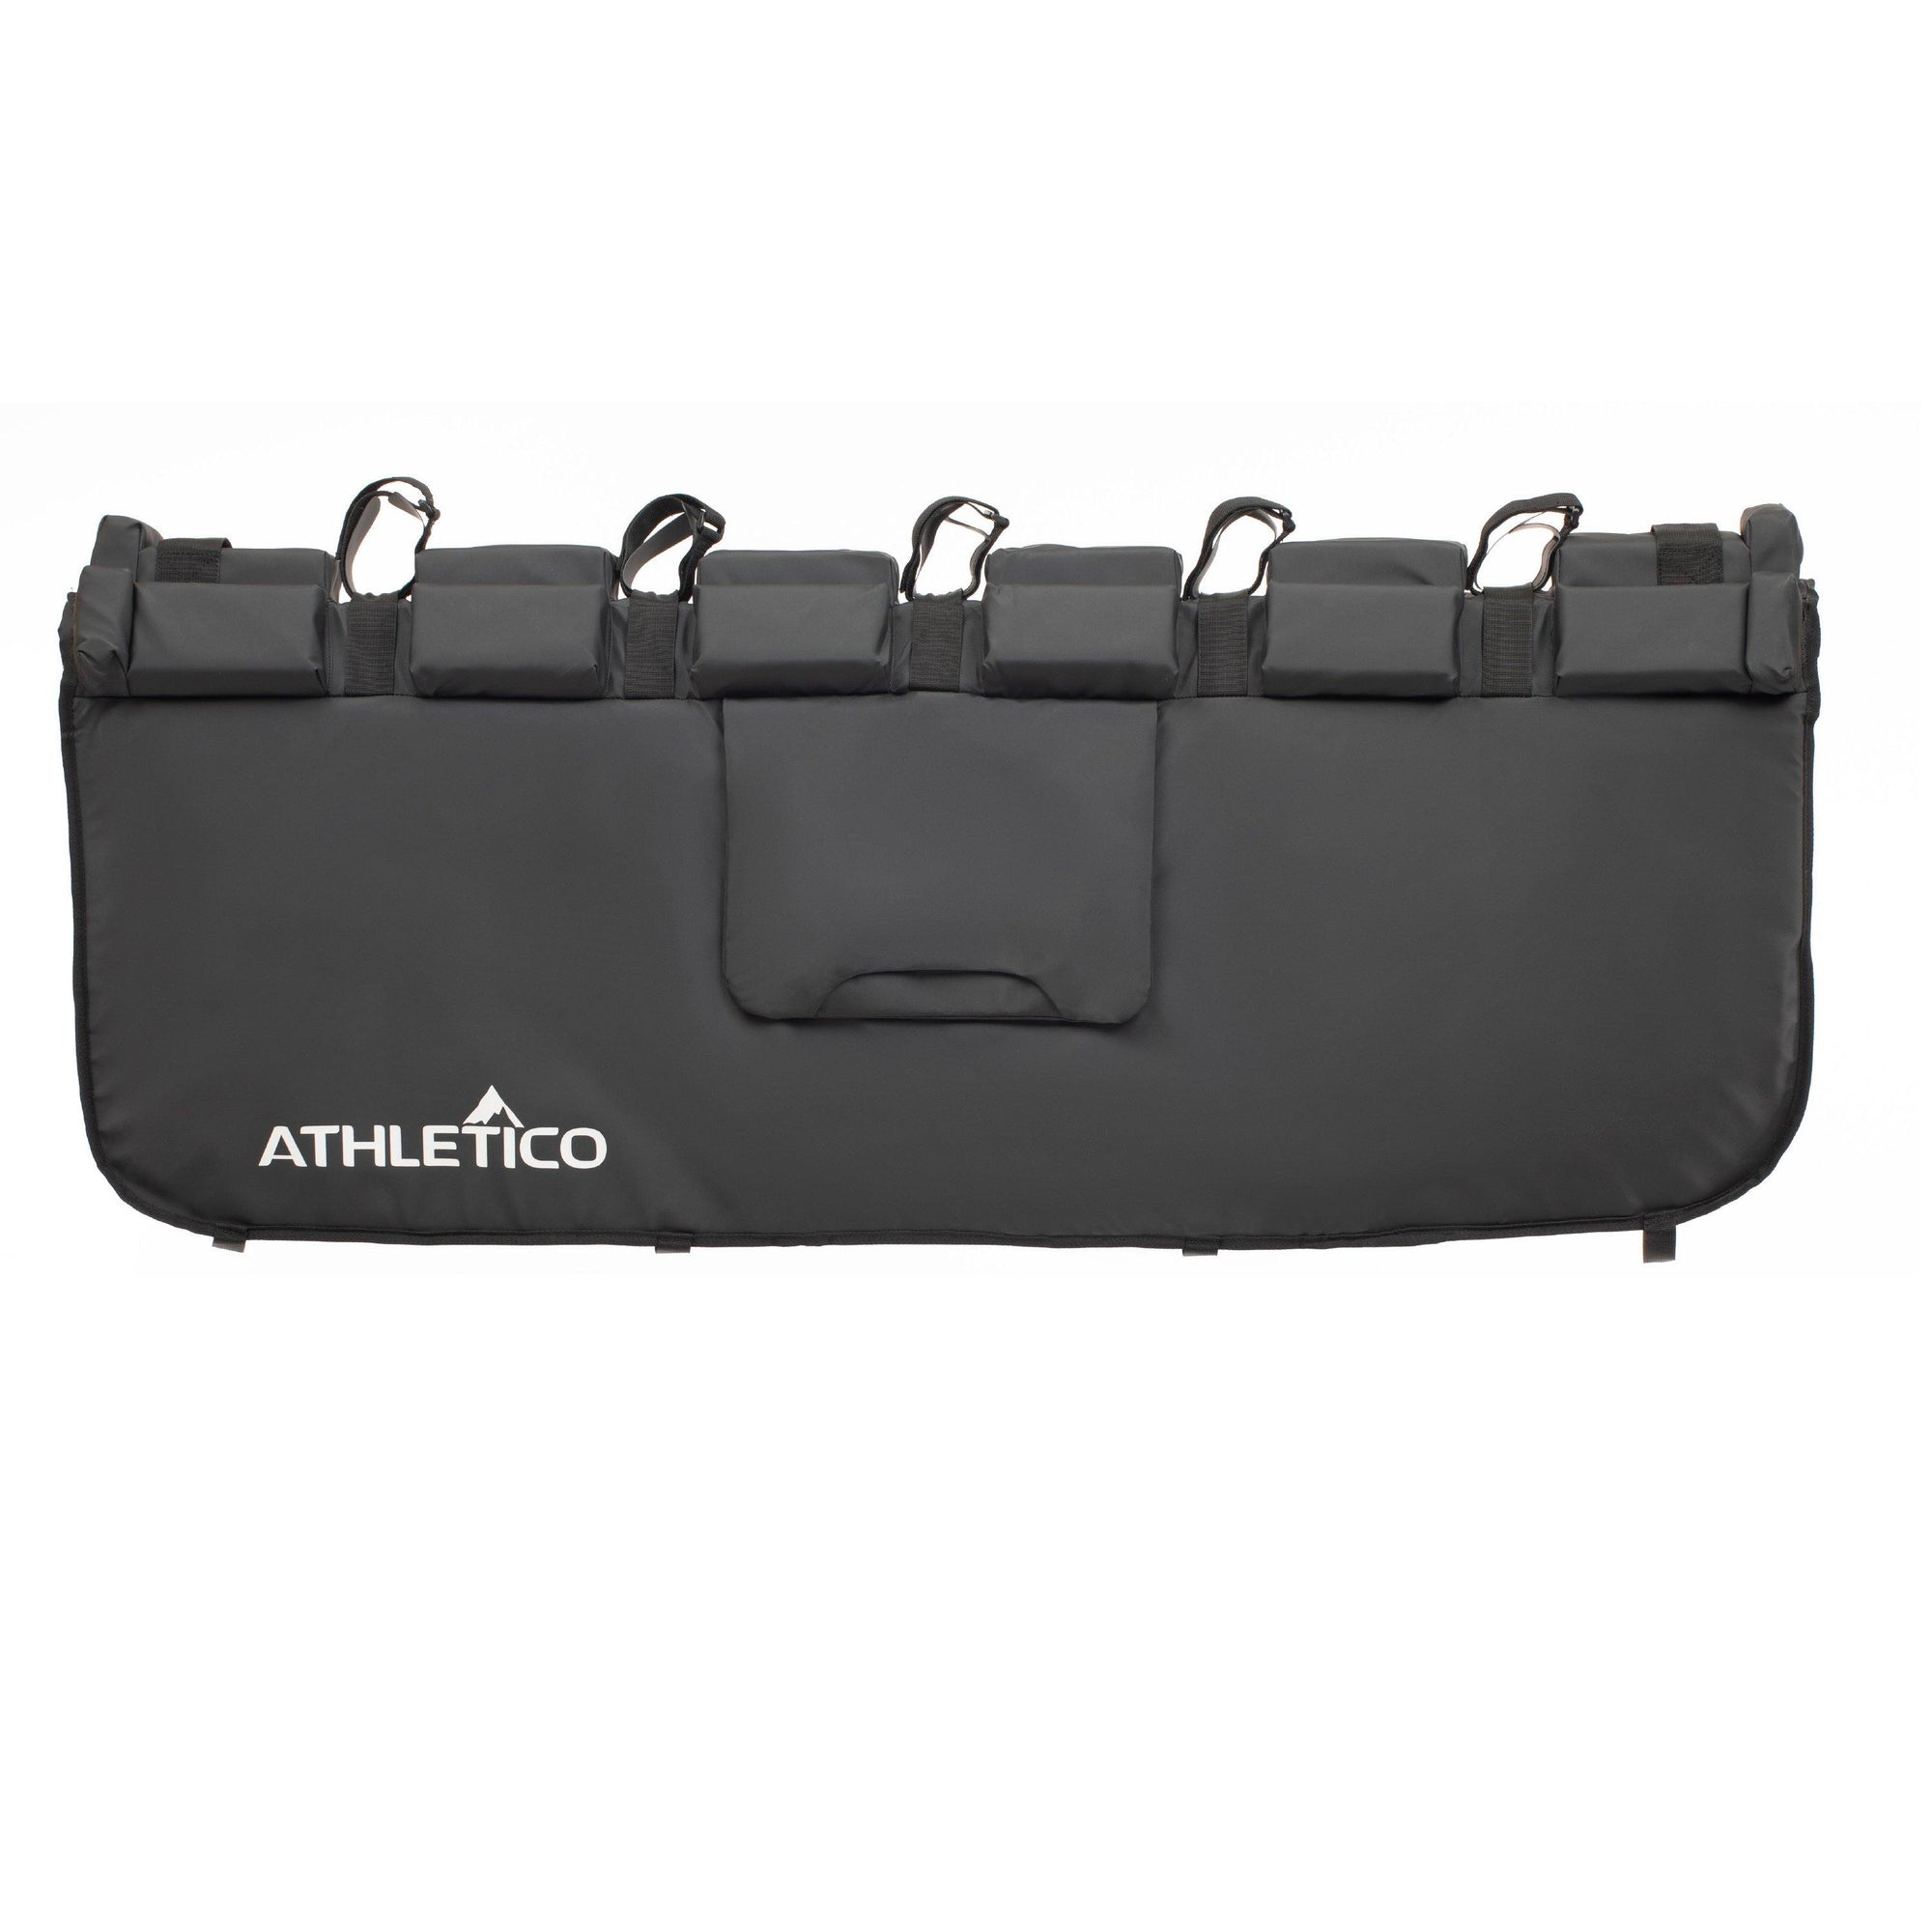 Athletico Tailgate Pad